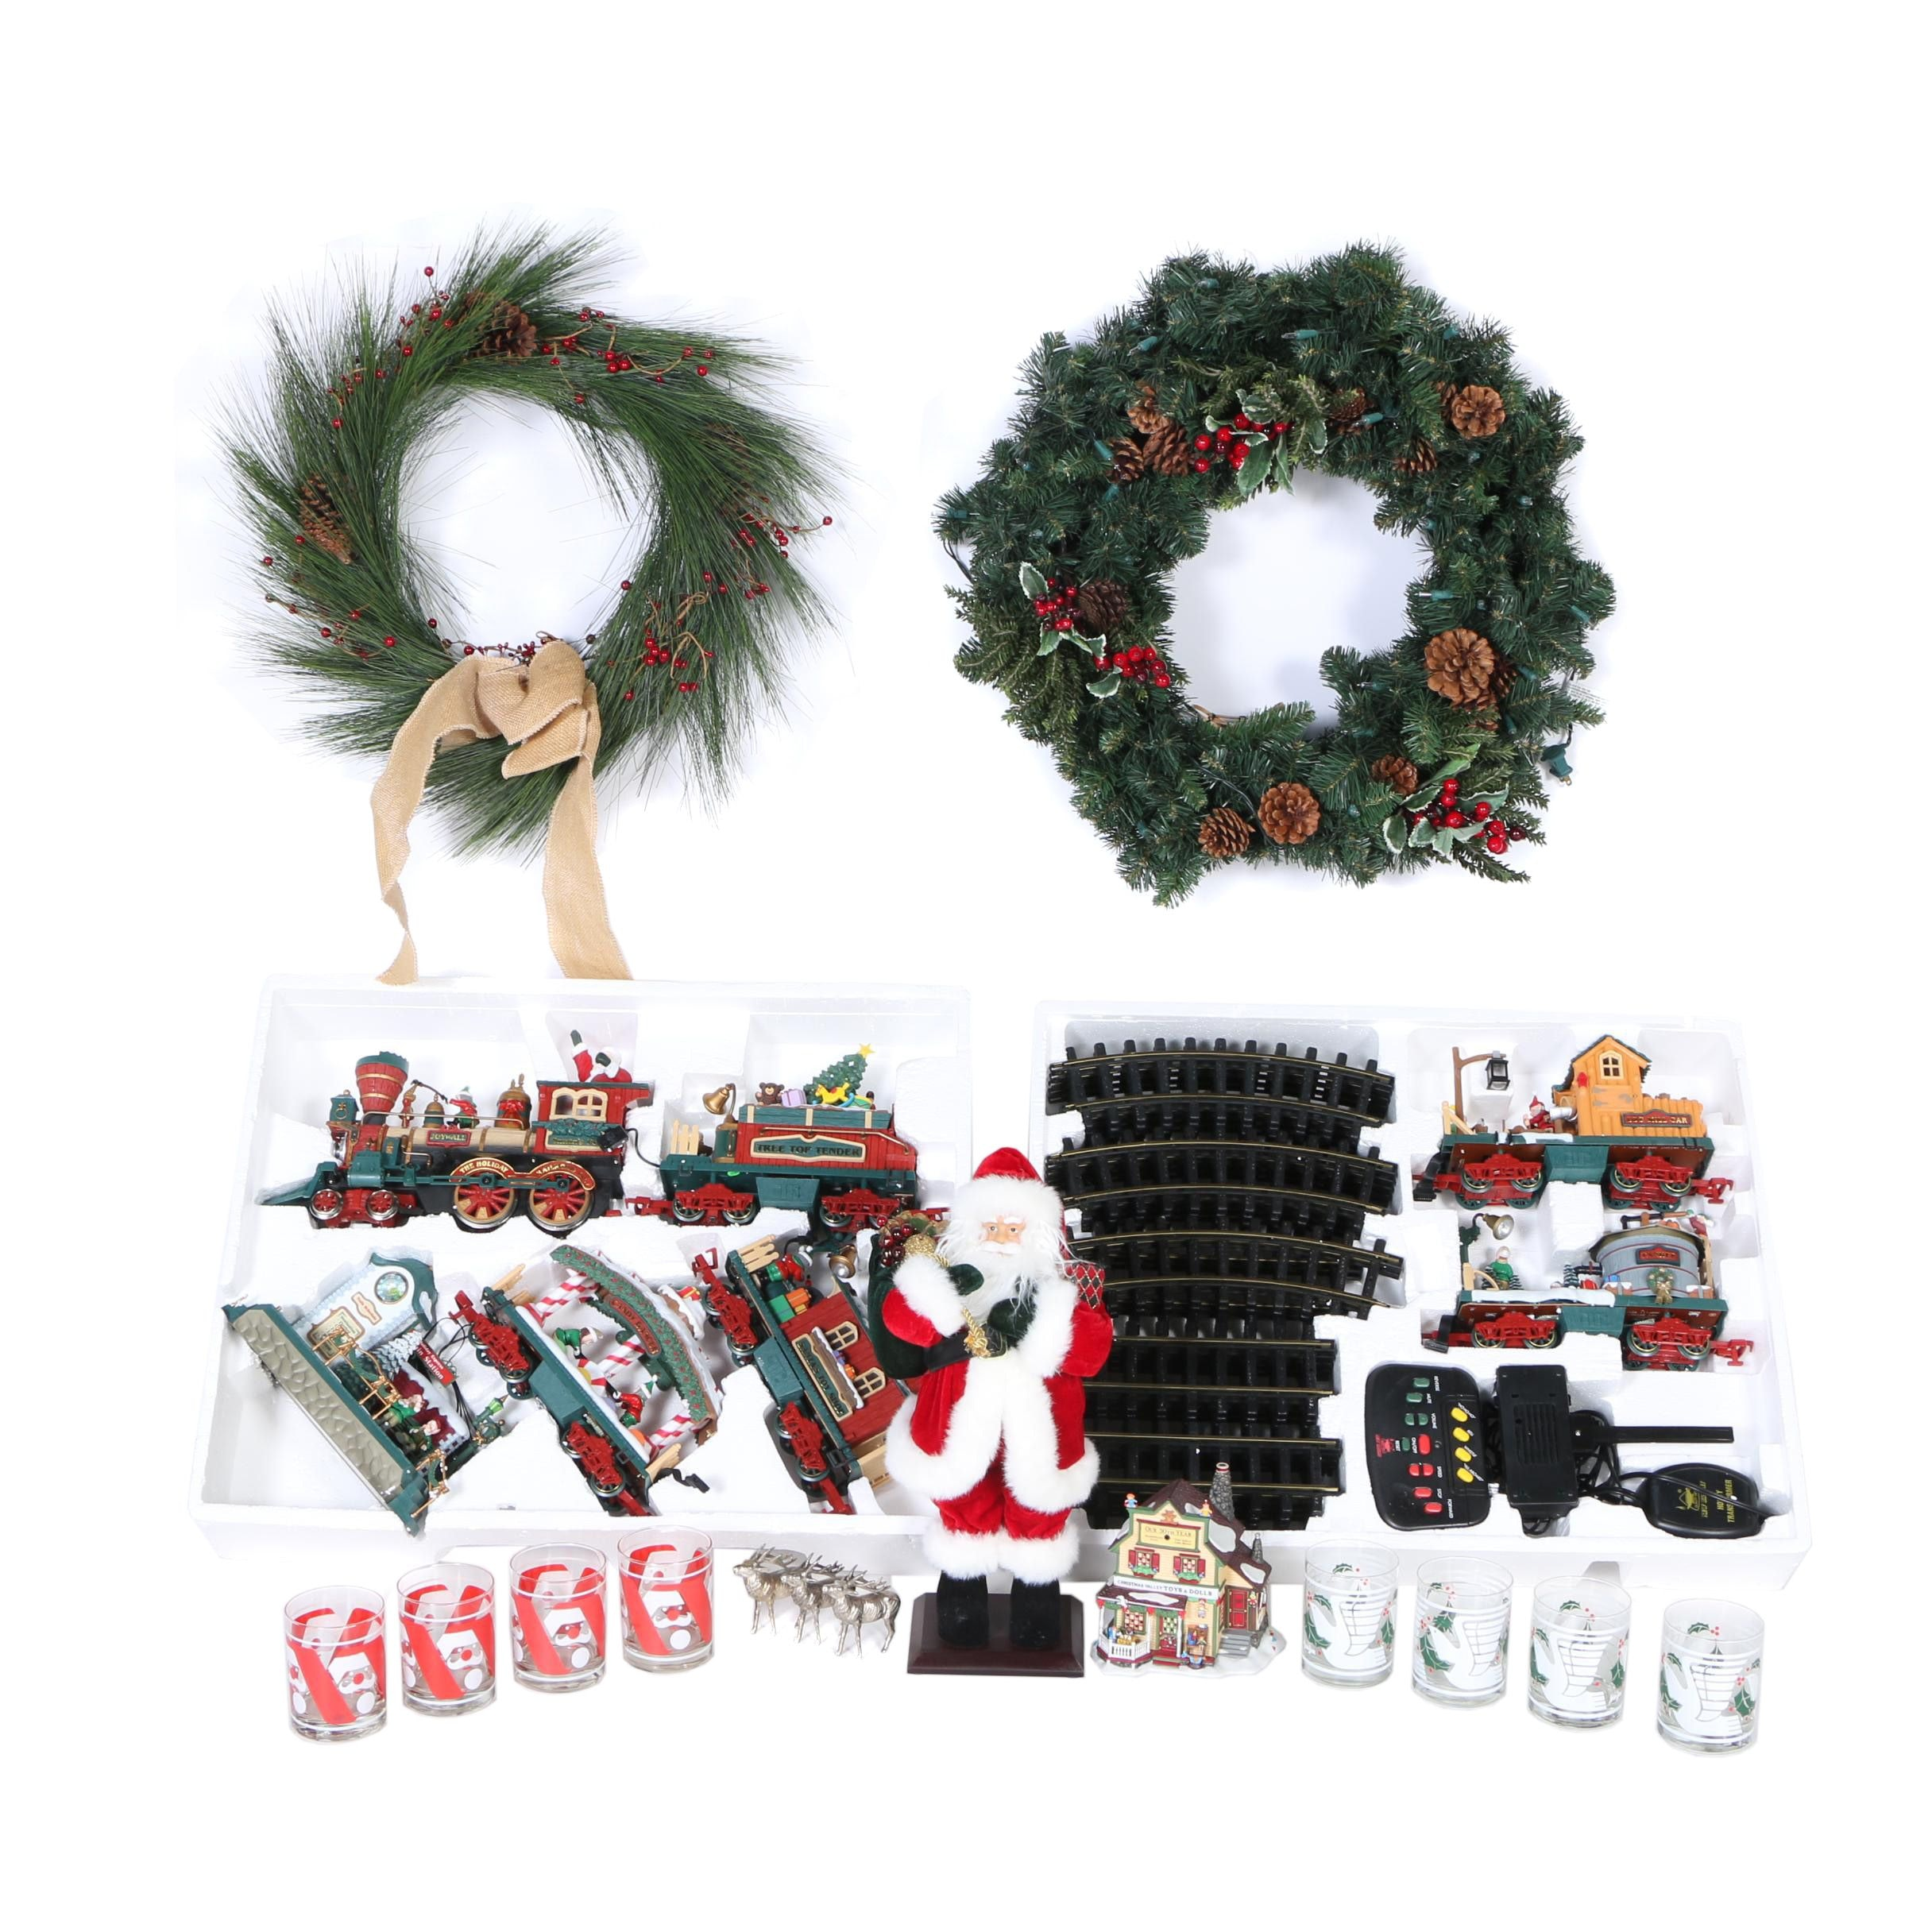 Christmas Wreaths, Decor and Drinking Glasses